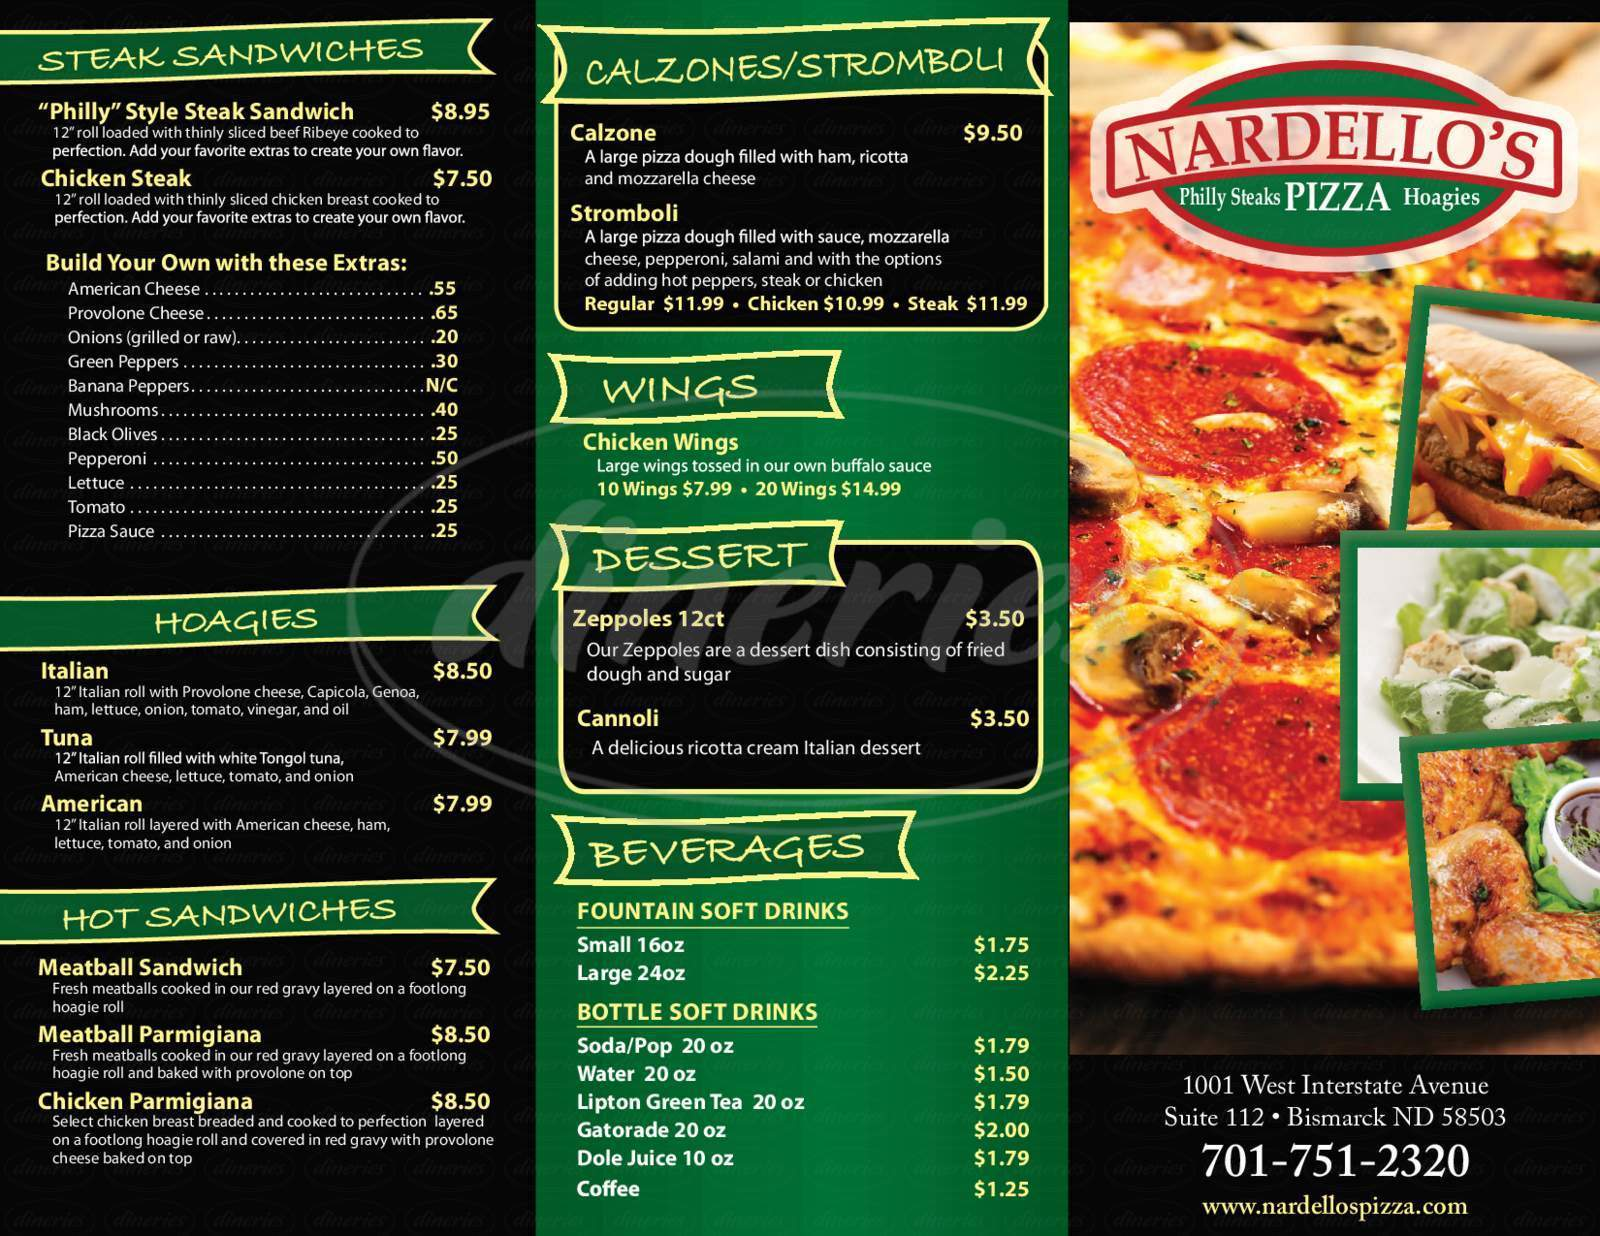 menu for Nardello's